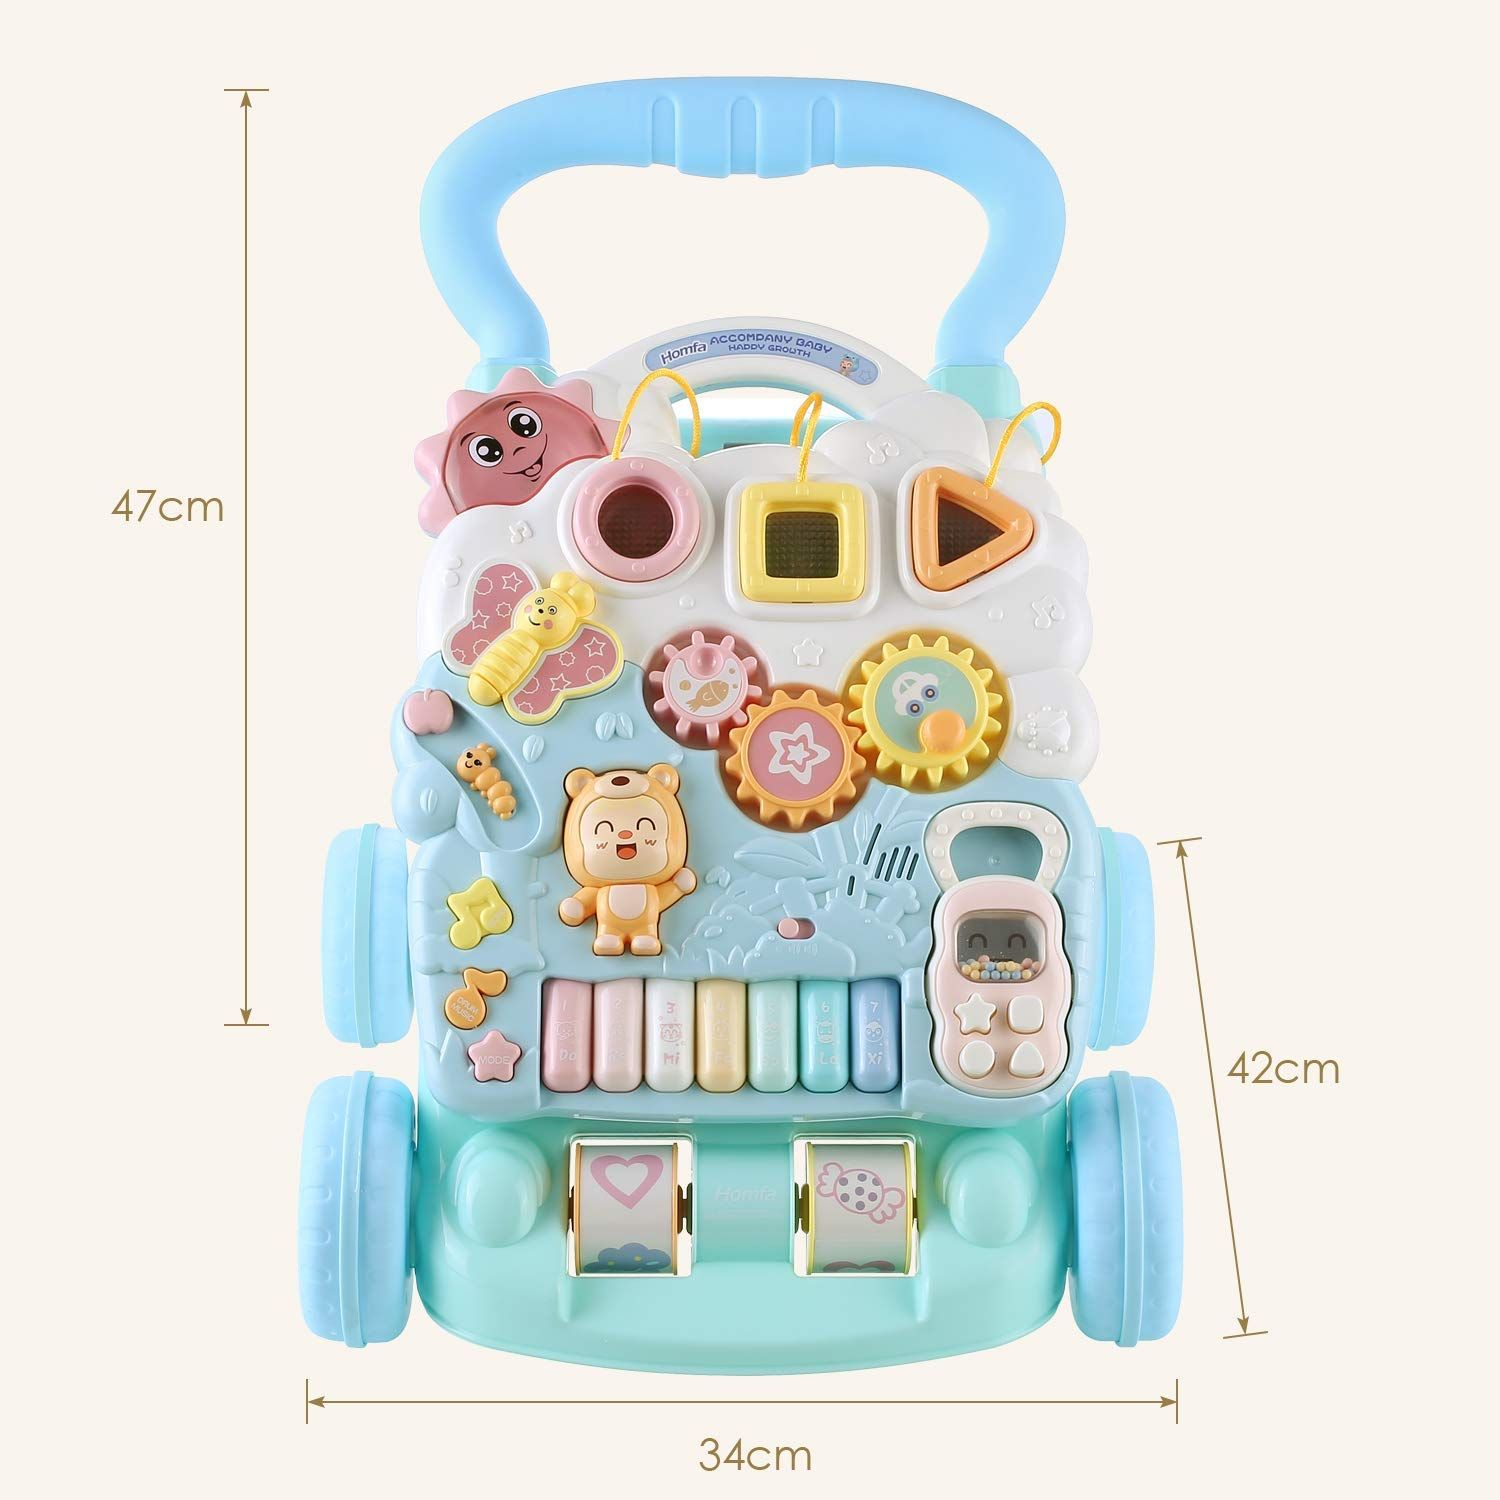 HOMFA Baby First Steps Walker Toys 2 in1 Baby Walker and